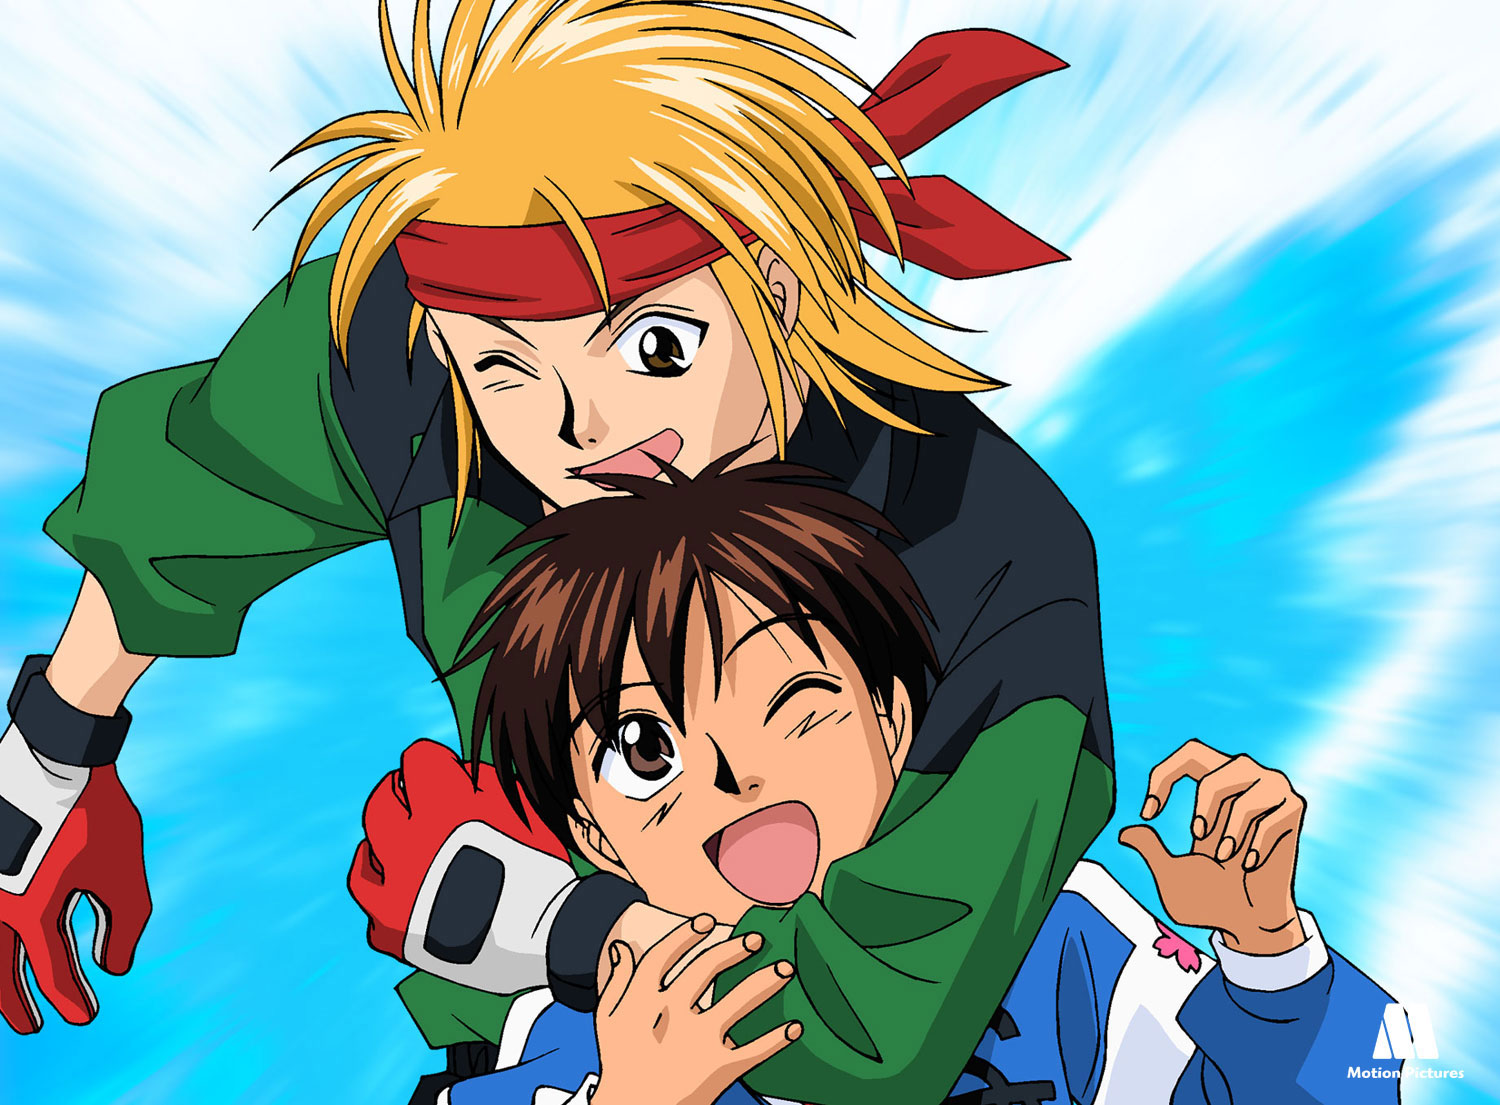 amigos fútbol, Dream Team, dibujos animados futbol, soccer anime japanese series